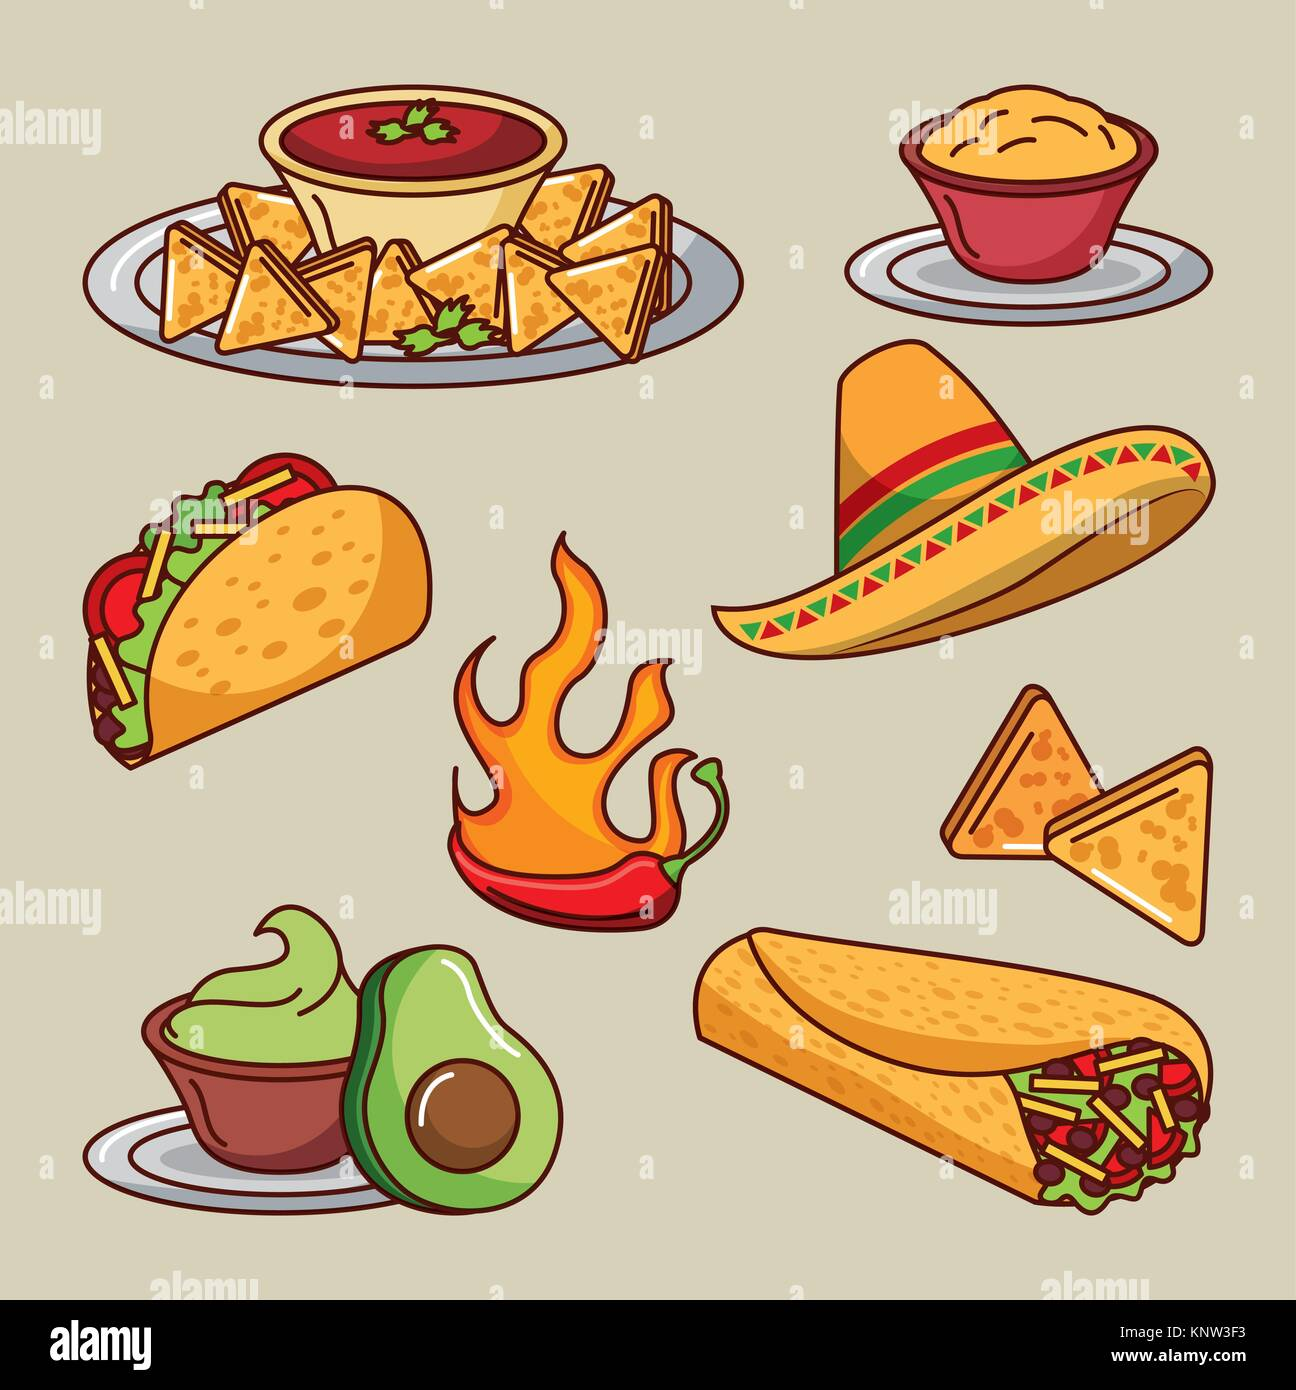 Mexican Restaurant Tacos Burritos Stock Photos Set Of Meat Cuts Diagram In Colourful Style Food Icons Menu Ingredients Spicy Image